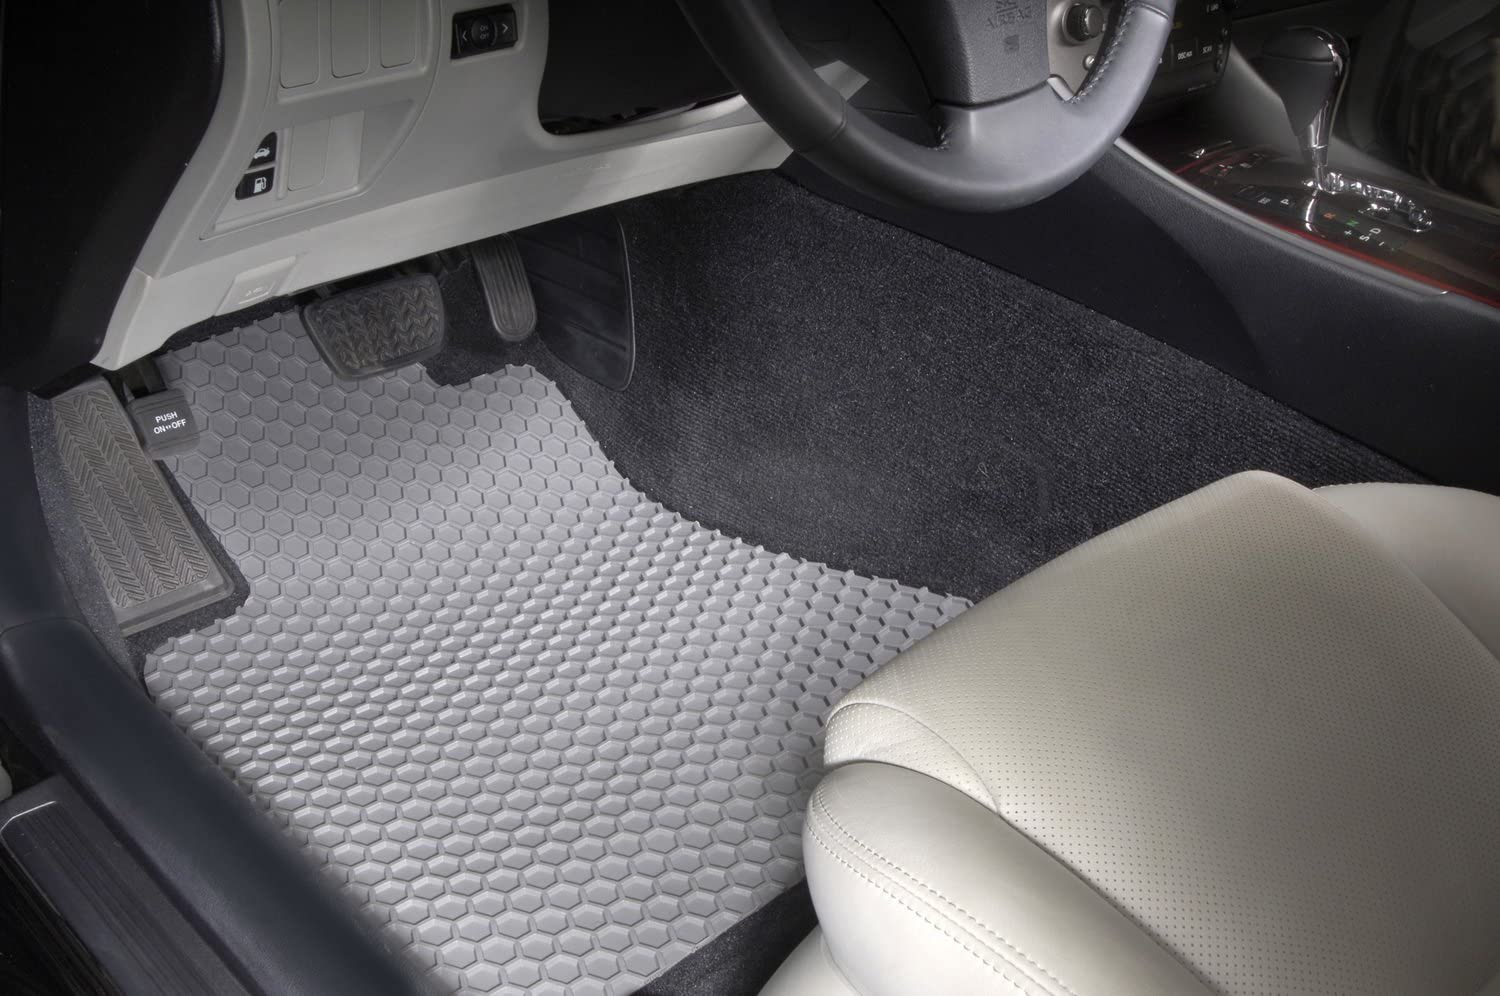 Intro-Tech FO-472R-RT-T Hexomat Second Row 2 pc Rubber-Like Compound Tan Custom Fit Auto Floor Mats for Select Ford F150 Models